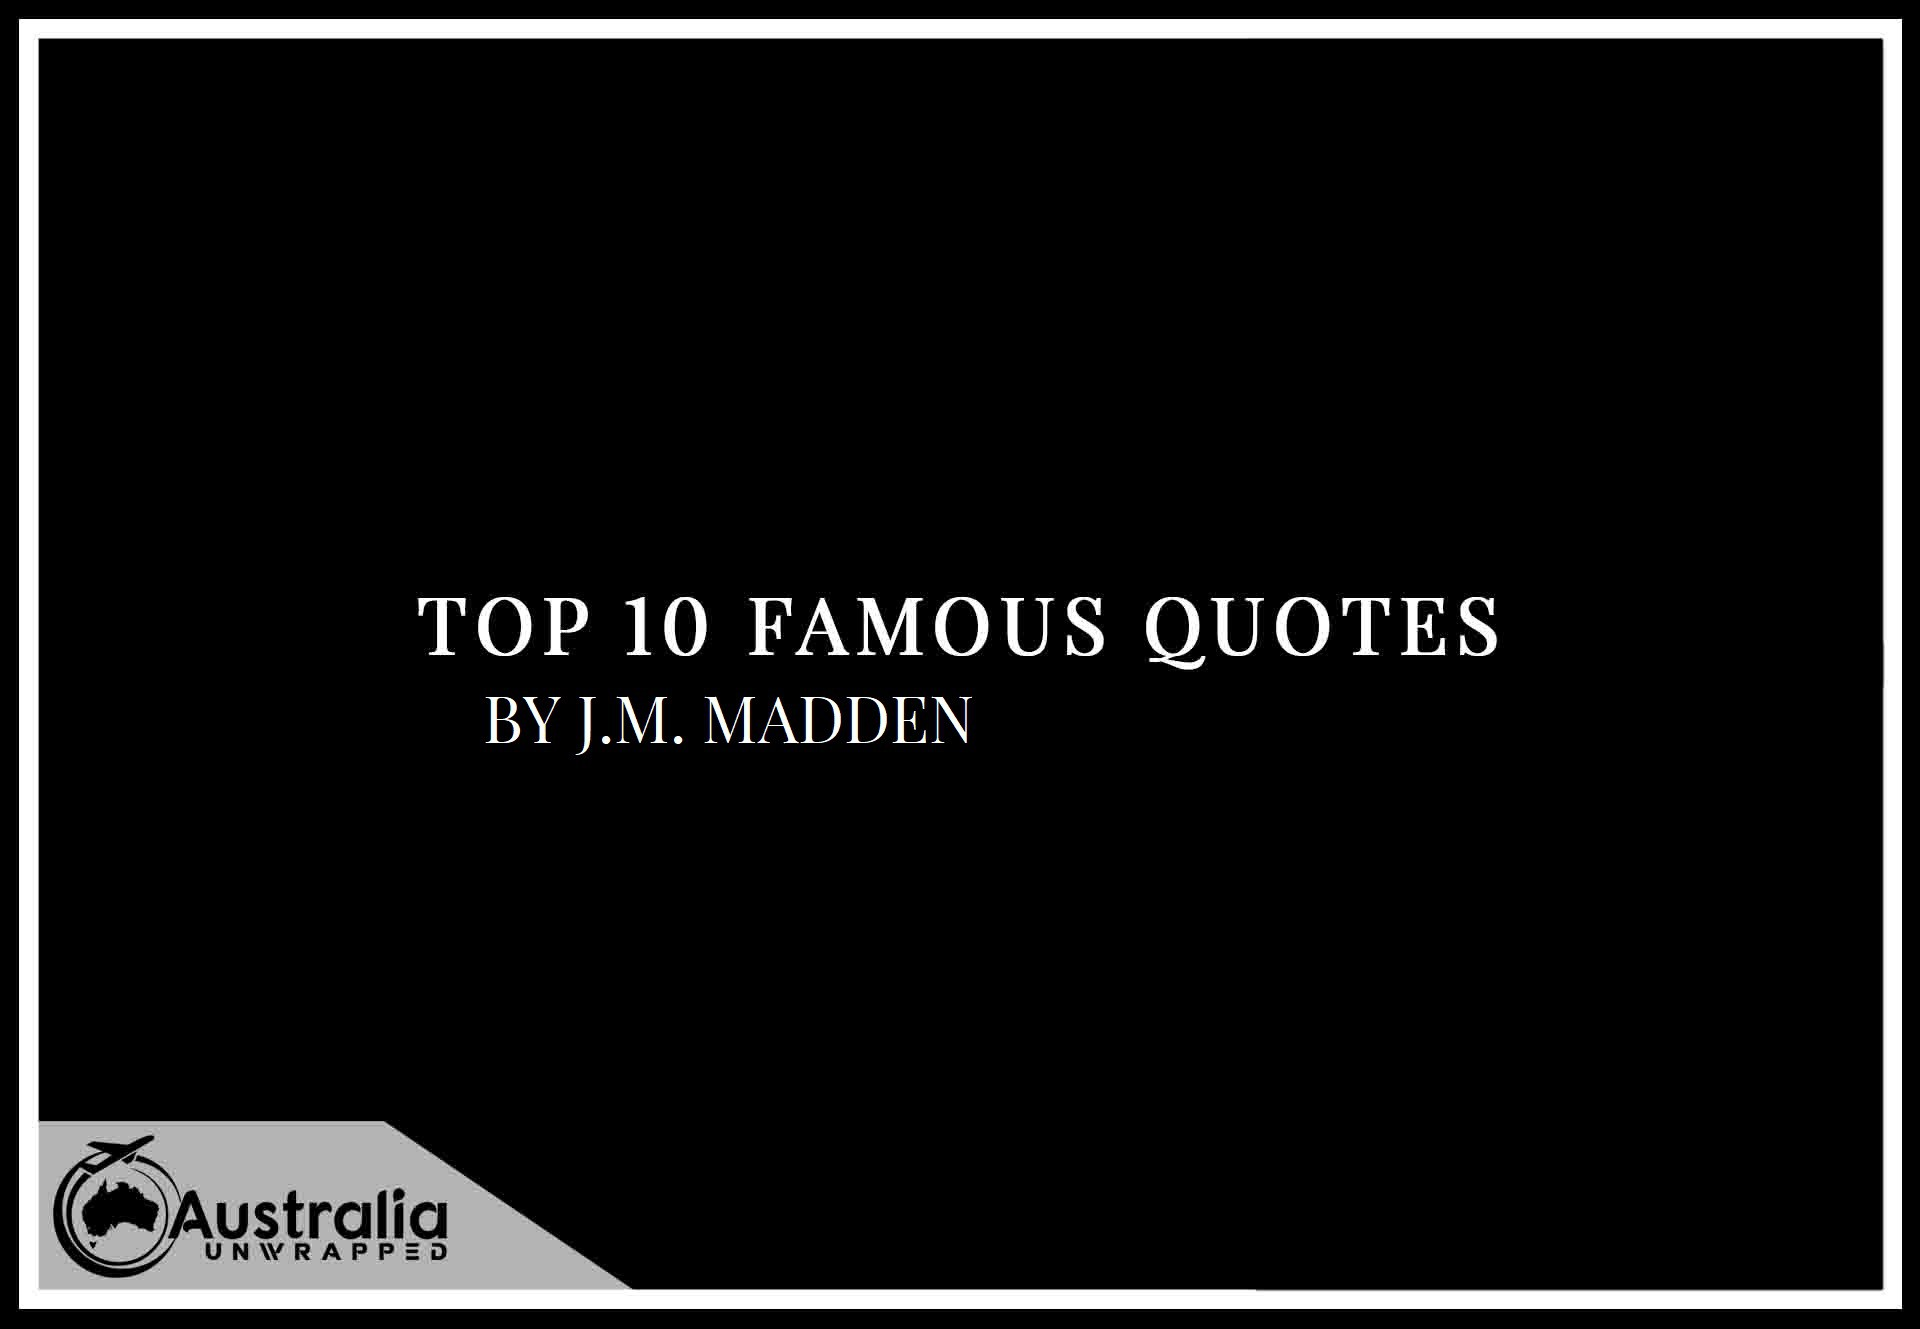 Top 10 Famous Quotes by Author J.M. Madden